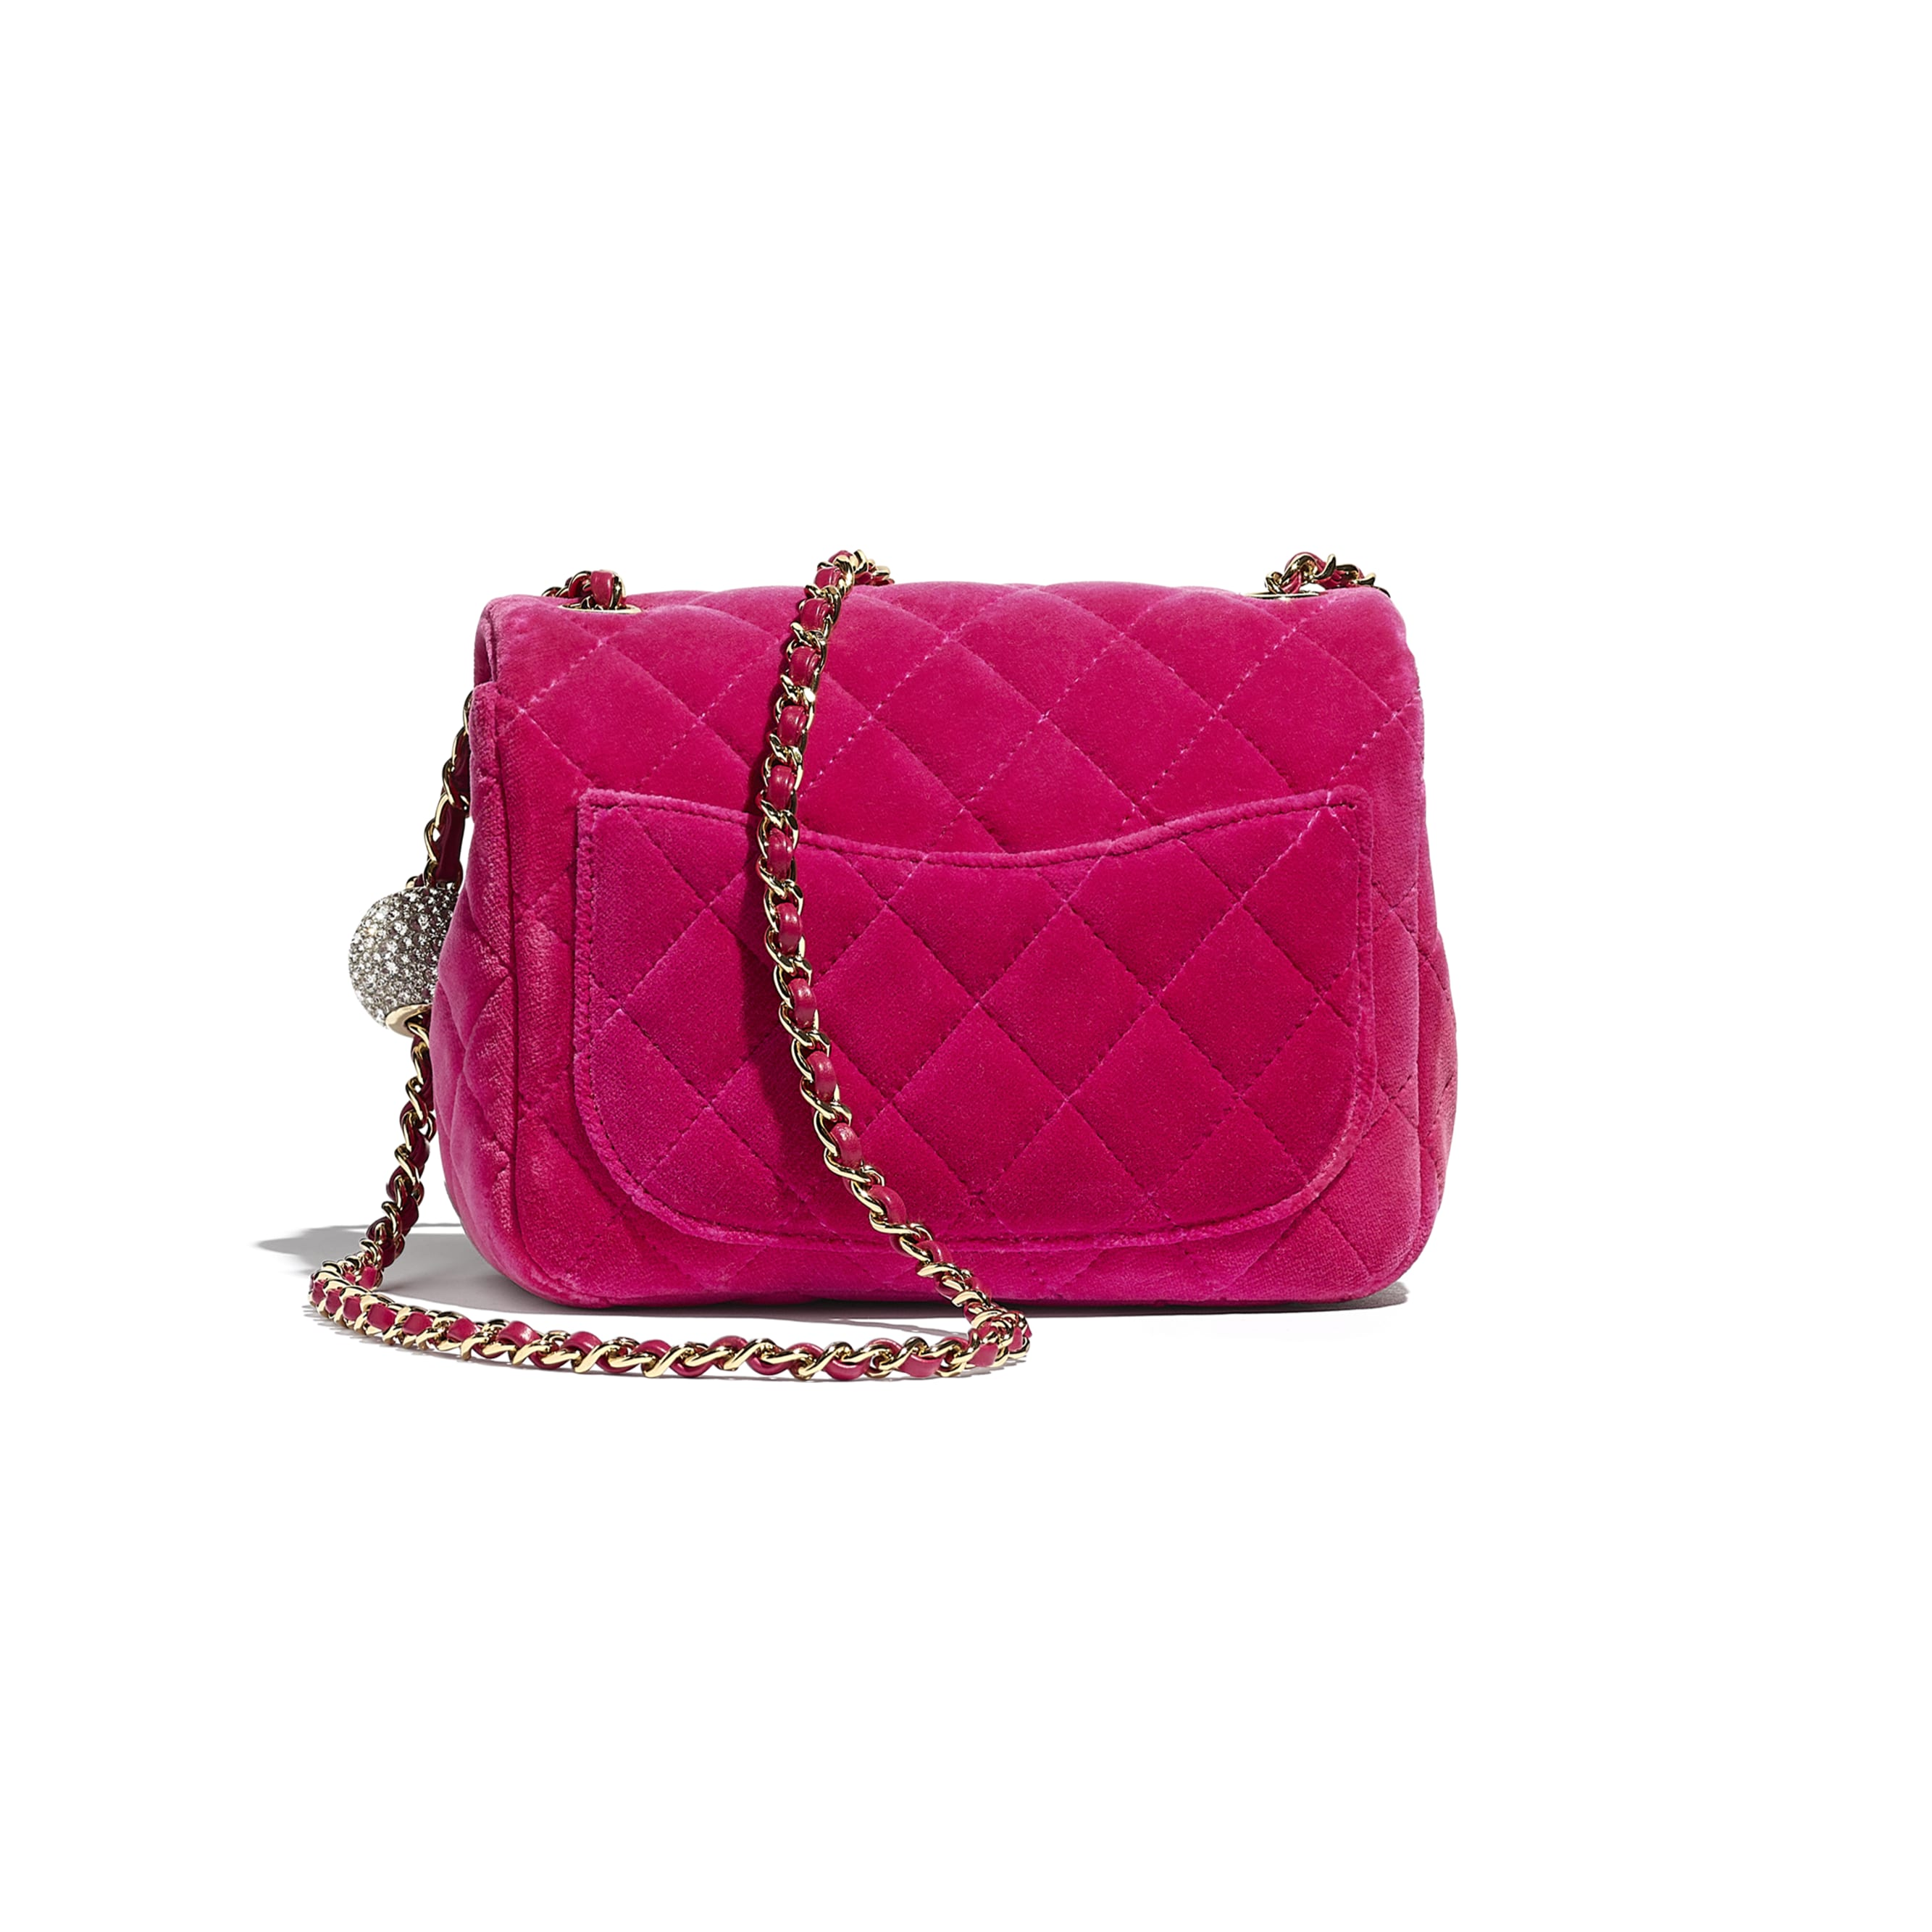 Flap Bag - Fuchsia - Velvet, Diamanté & Gold-Tone Metal - CHANEL - Alternative view - see standard sized version